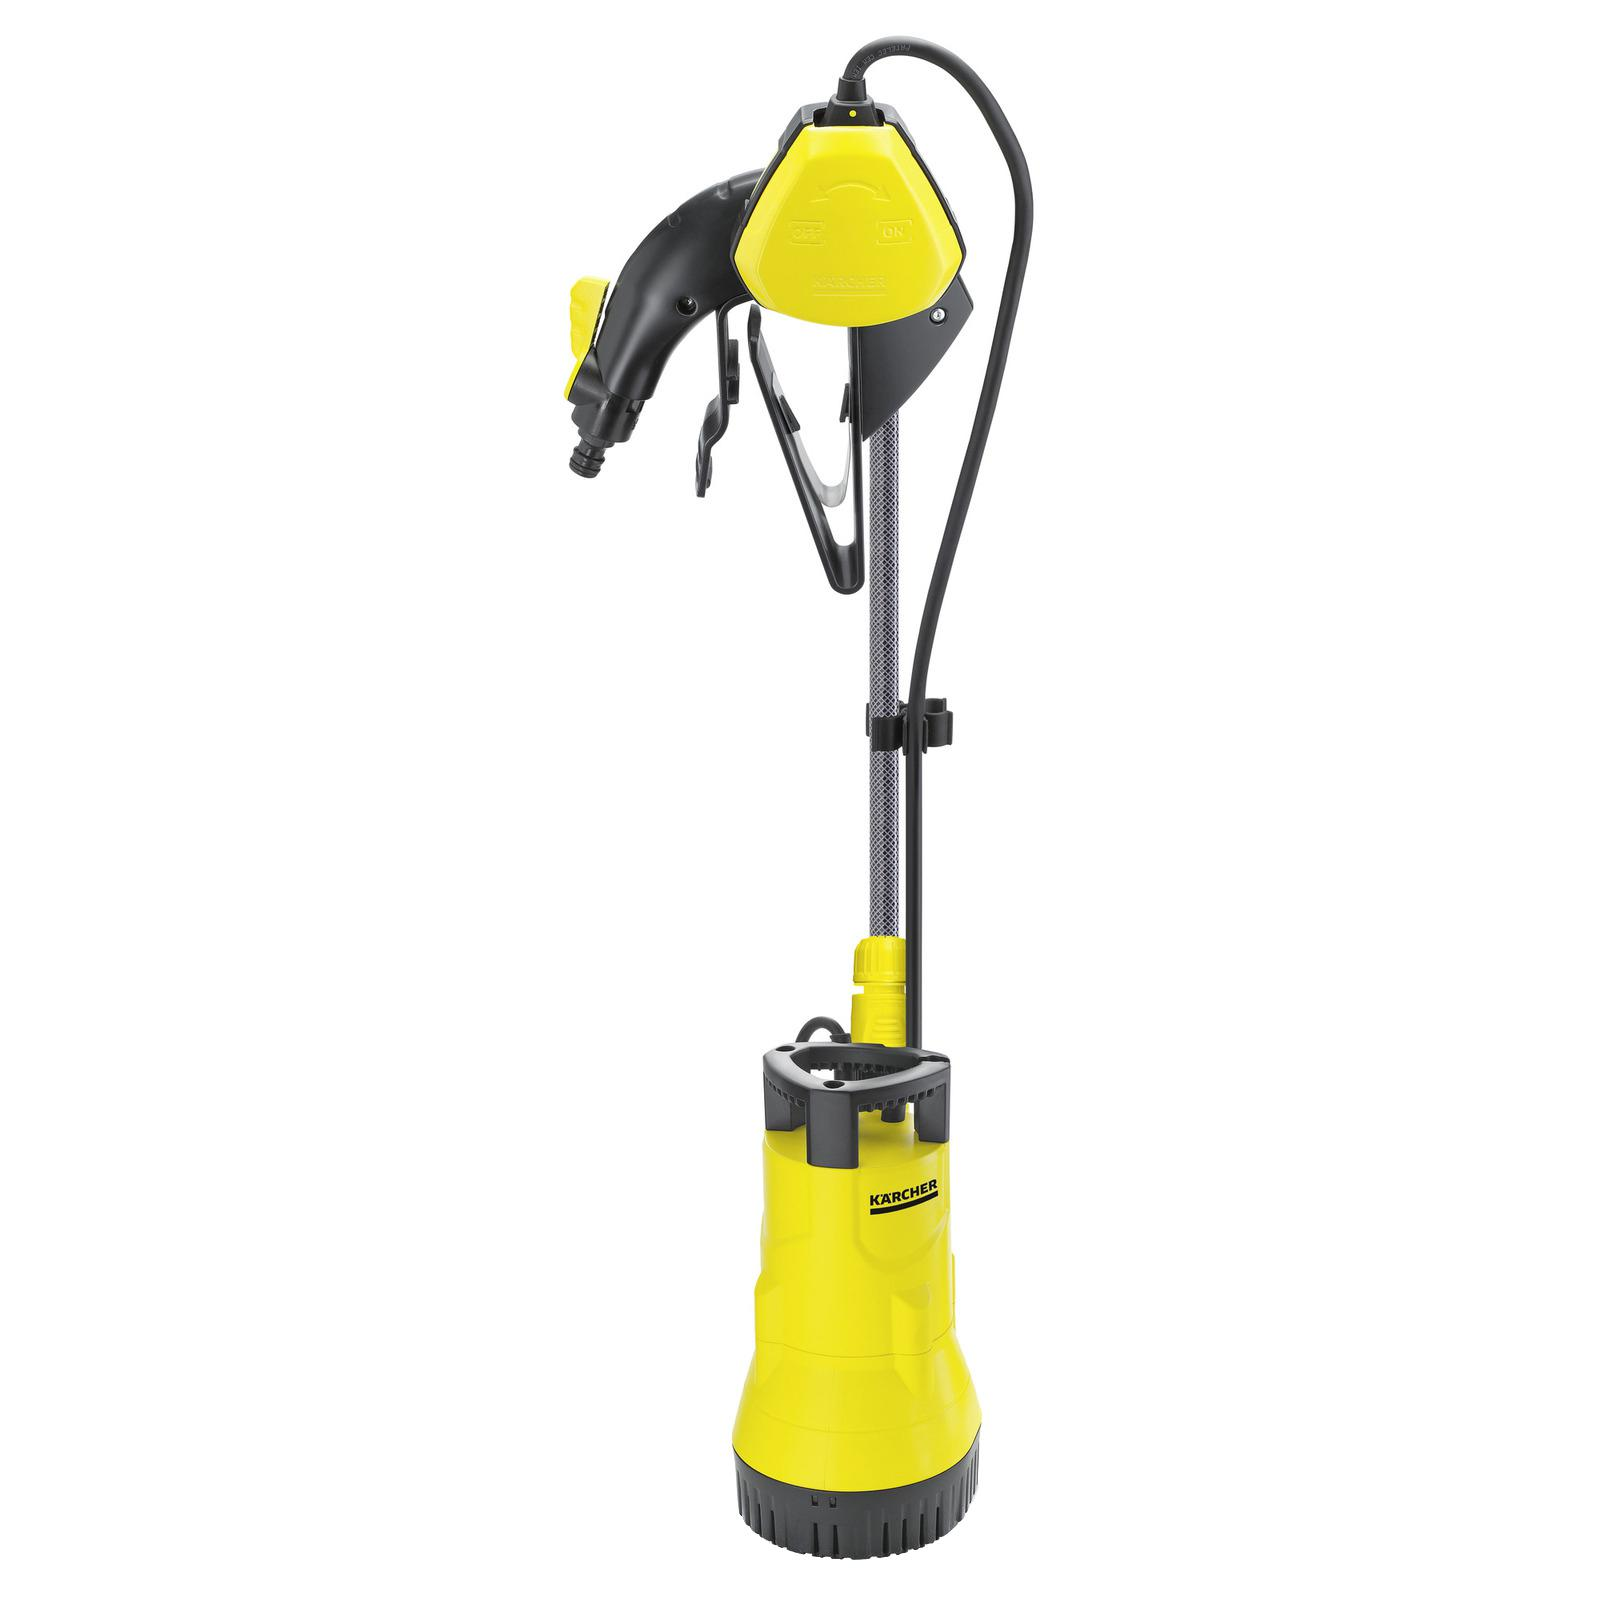 Бочковой насос Karcher Bp 1 barrel насос karcher bp 1 barrel 1 645 460